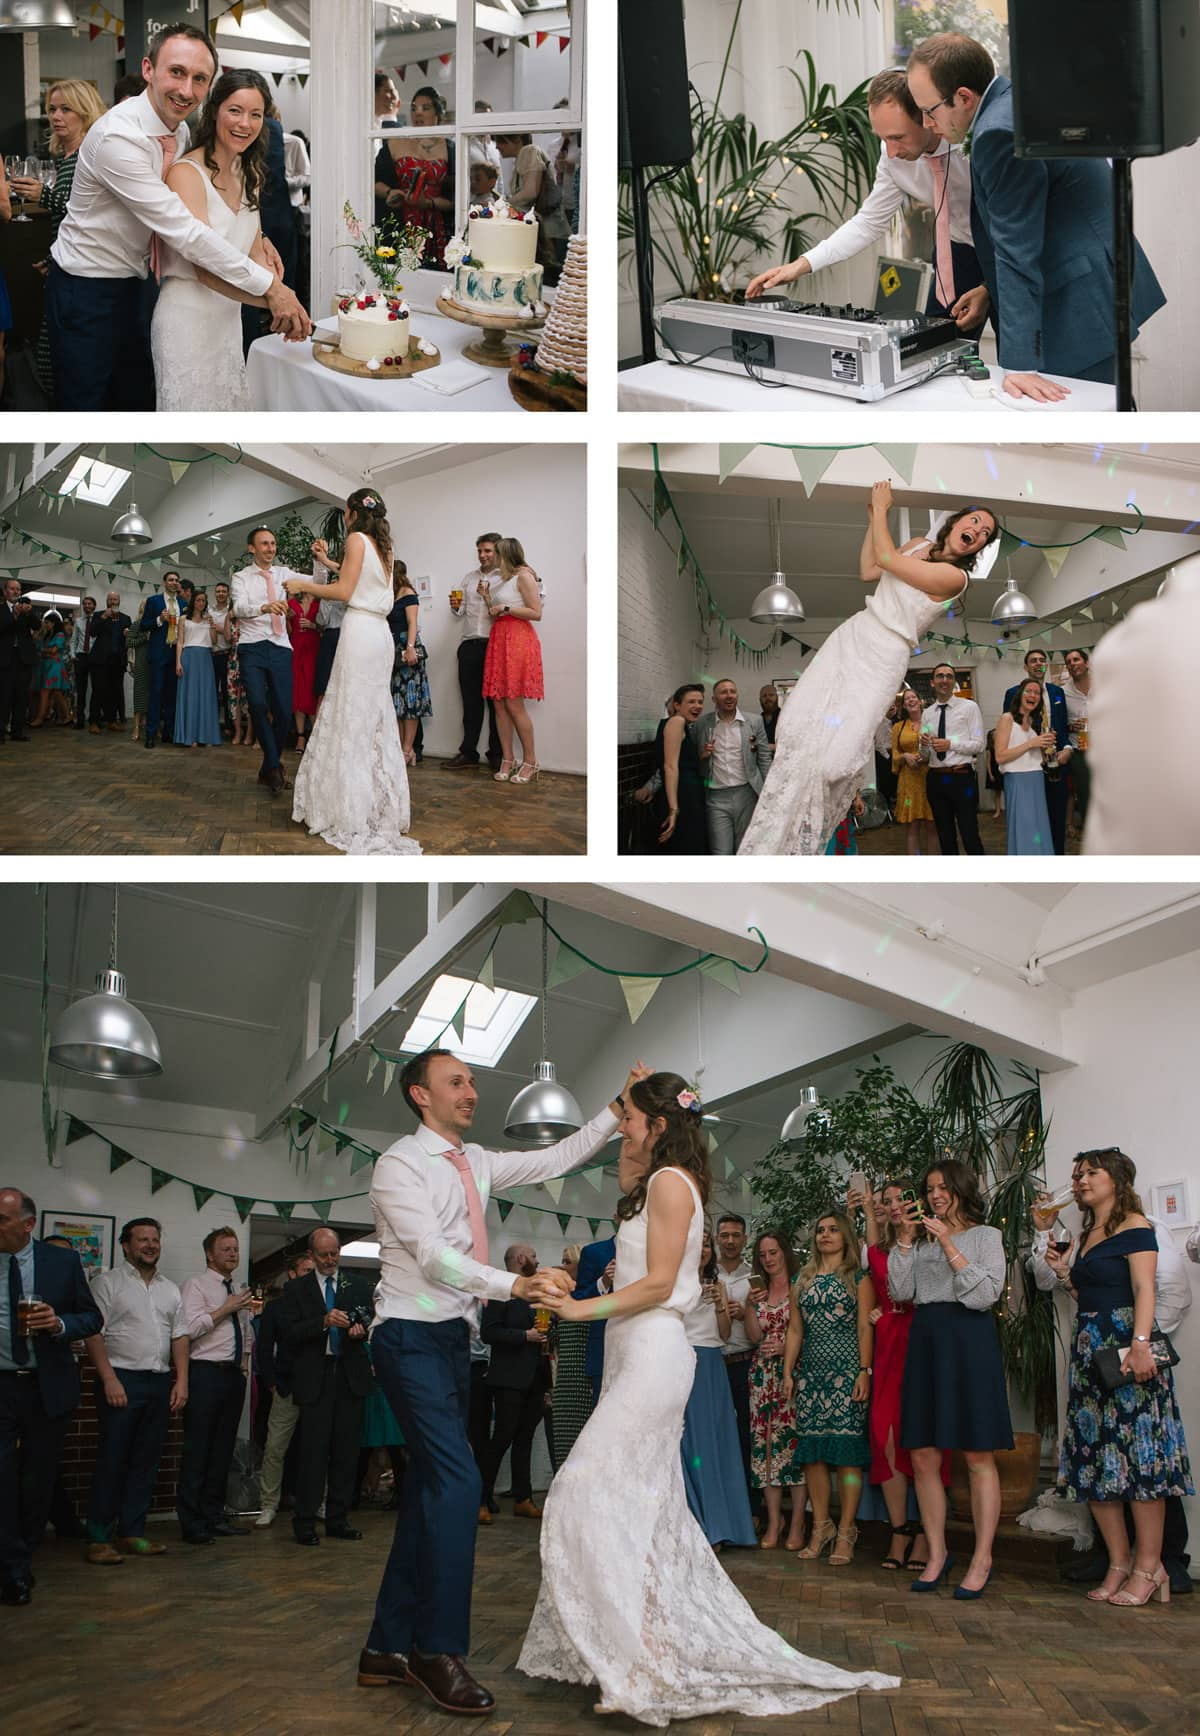 Collage of images of wedding party at The Jam Factory: cutting the cake, DJing and hitting the dance floor.